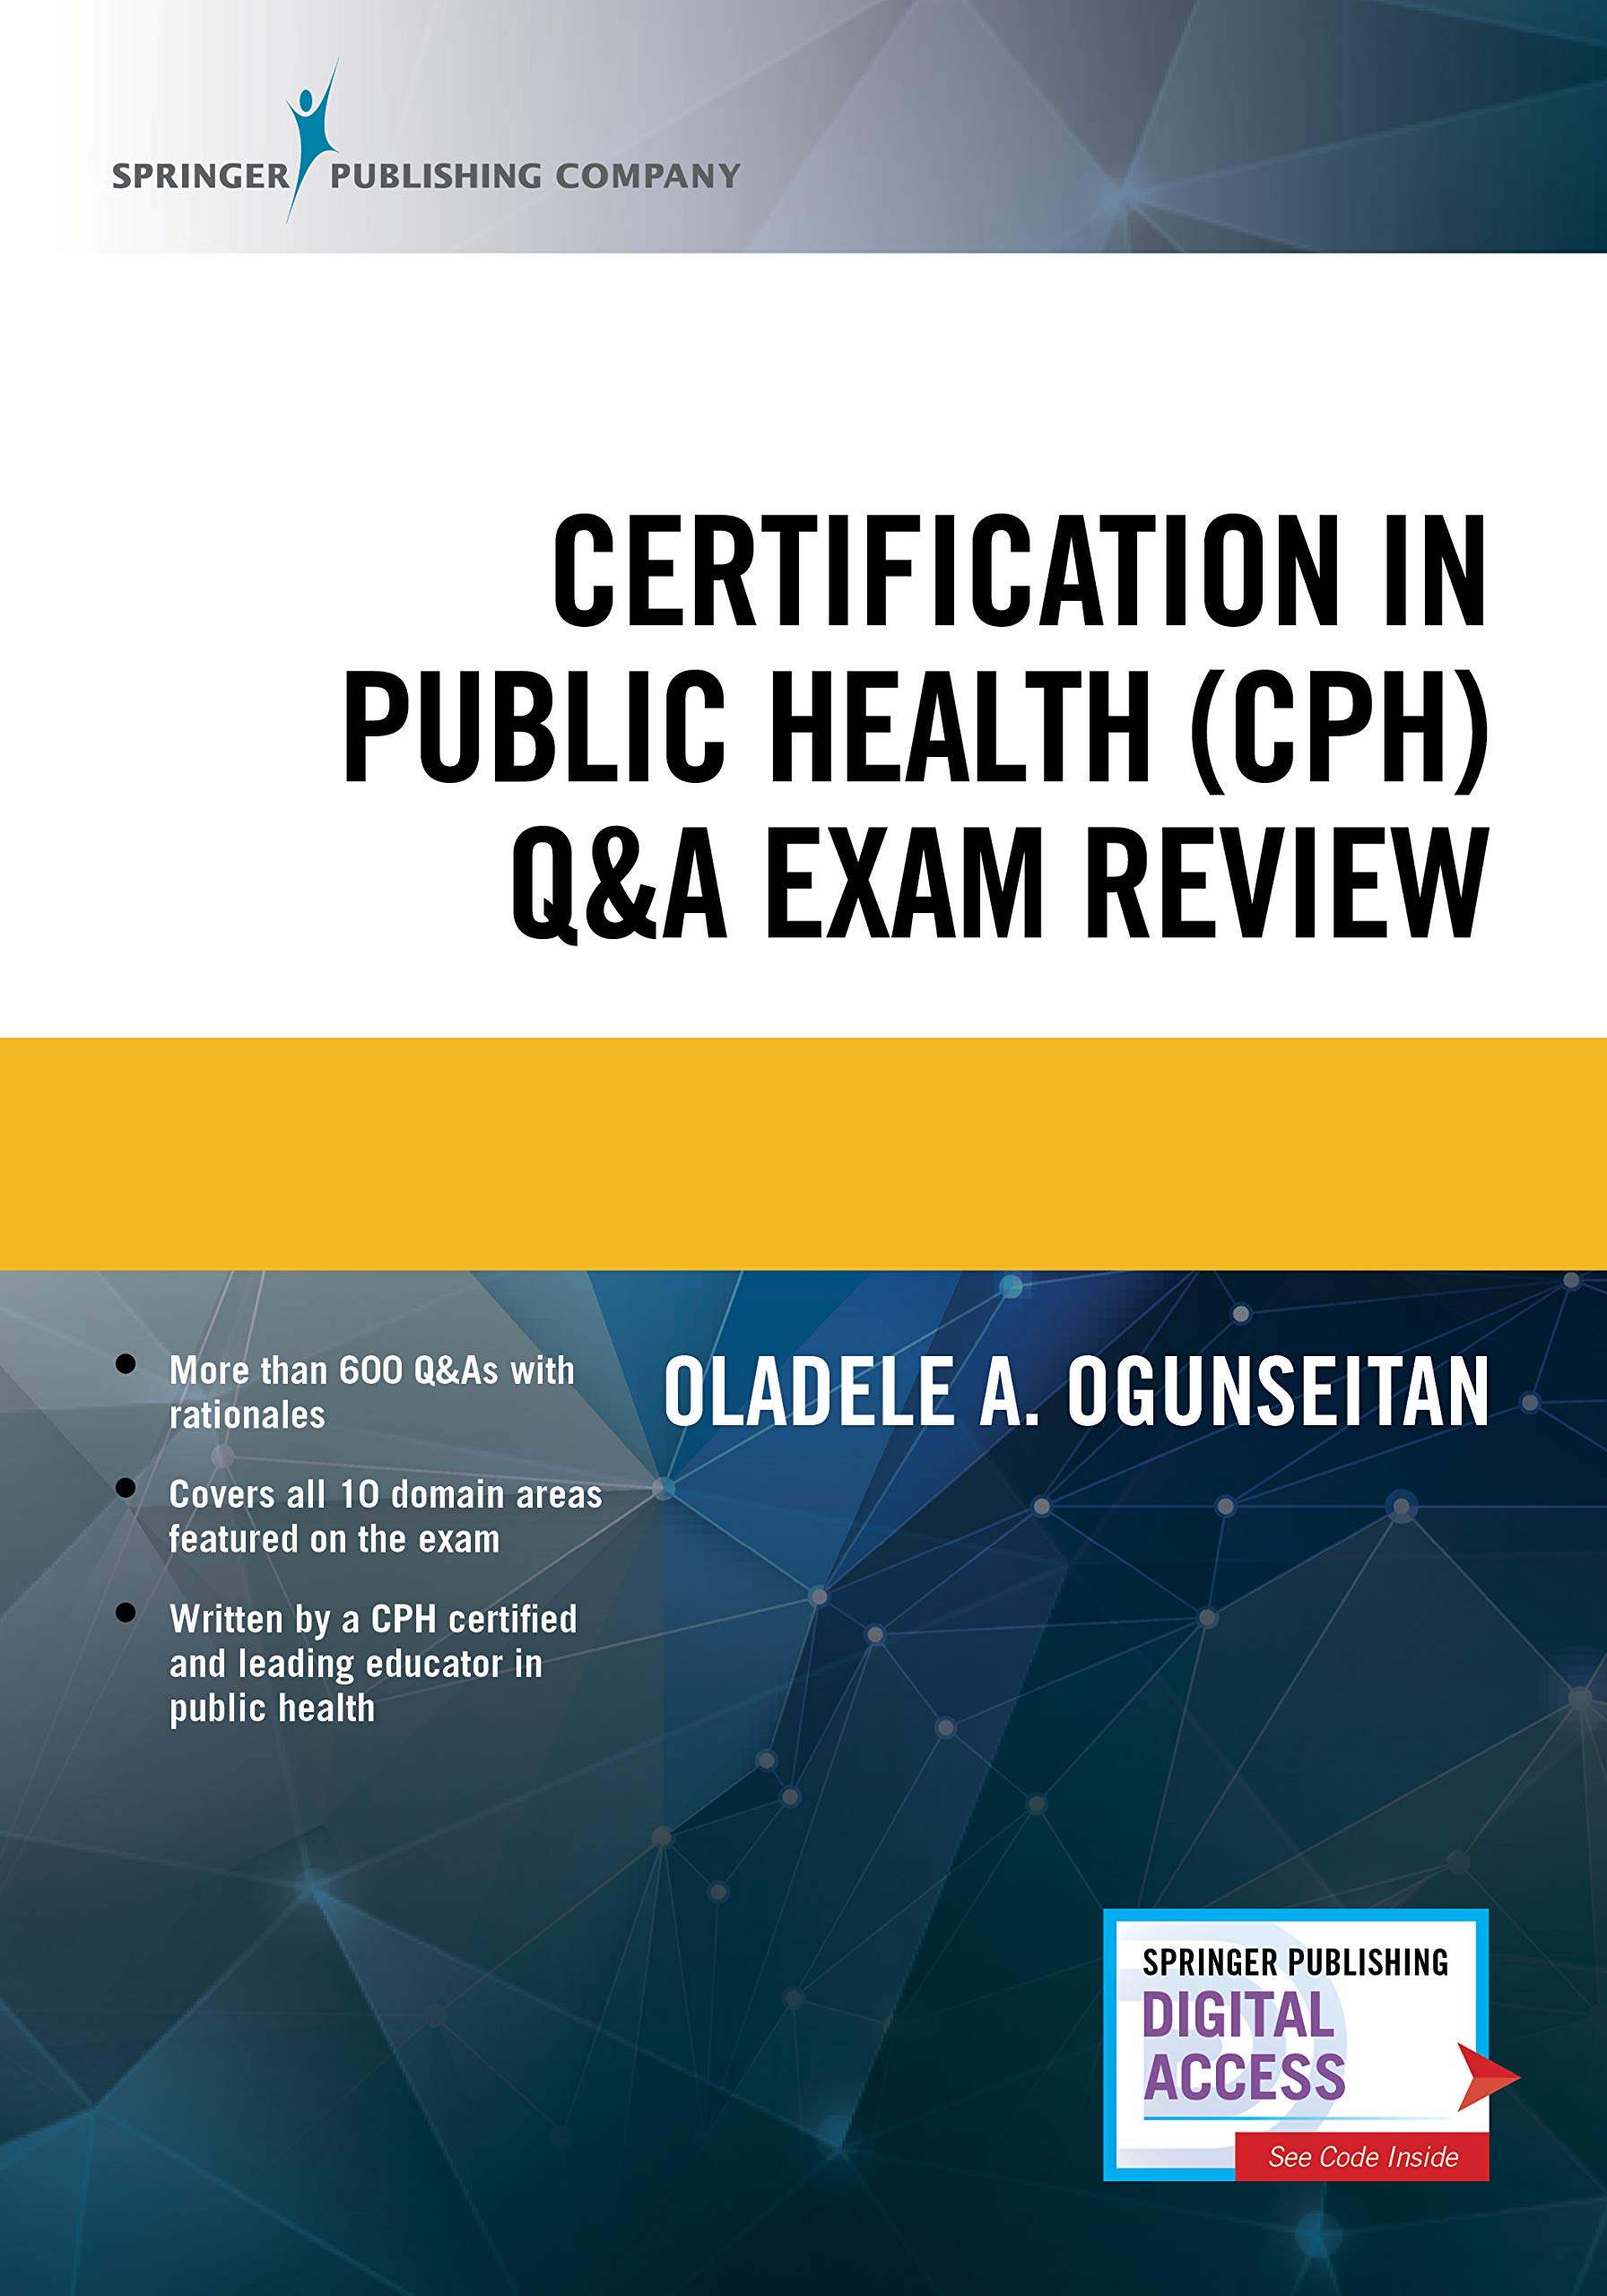 Certification in Public Health (CPH) Q&A Exam Review – Study Resource Book for Students and Practitioners in Healthcare Management and Health Services